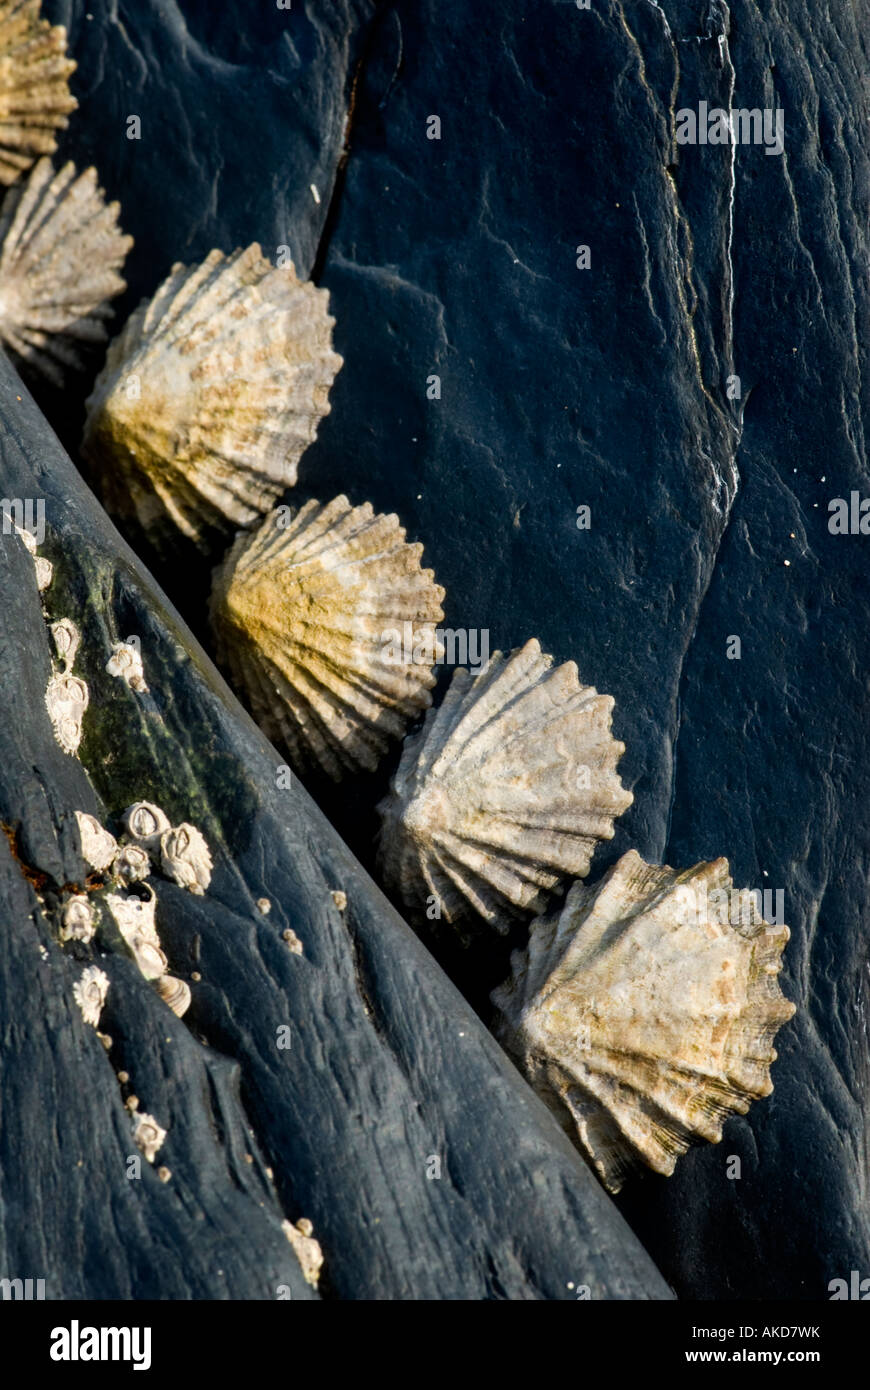 Adherent common limpets on rocks, Welsh coast. - Stock Image